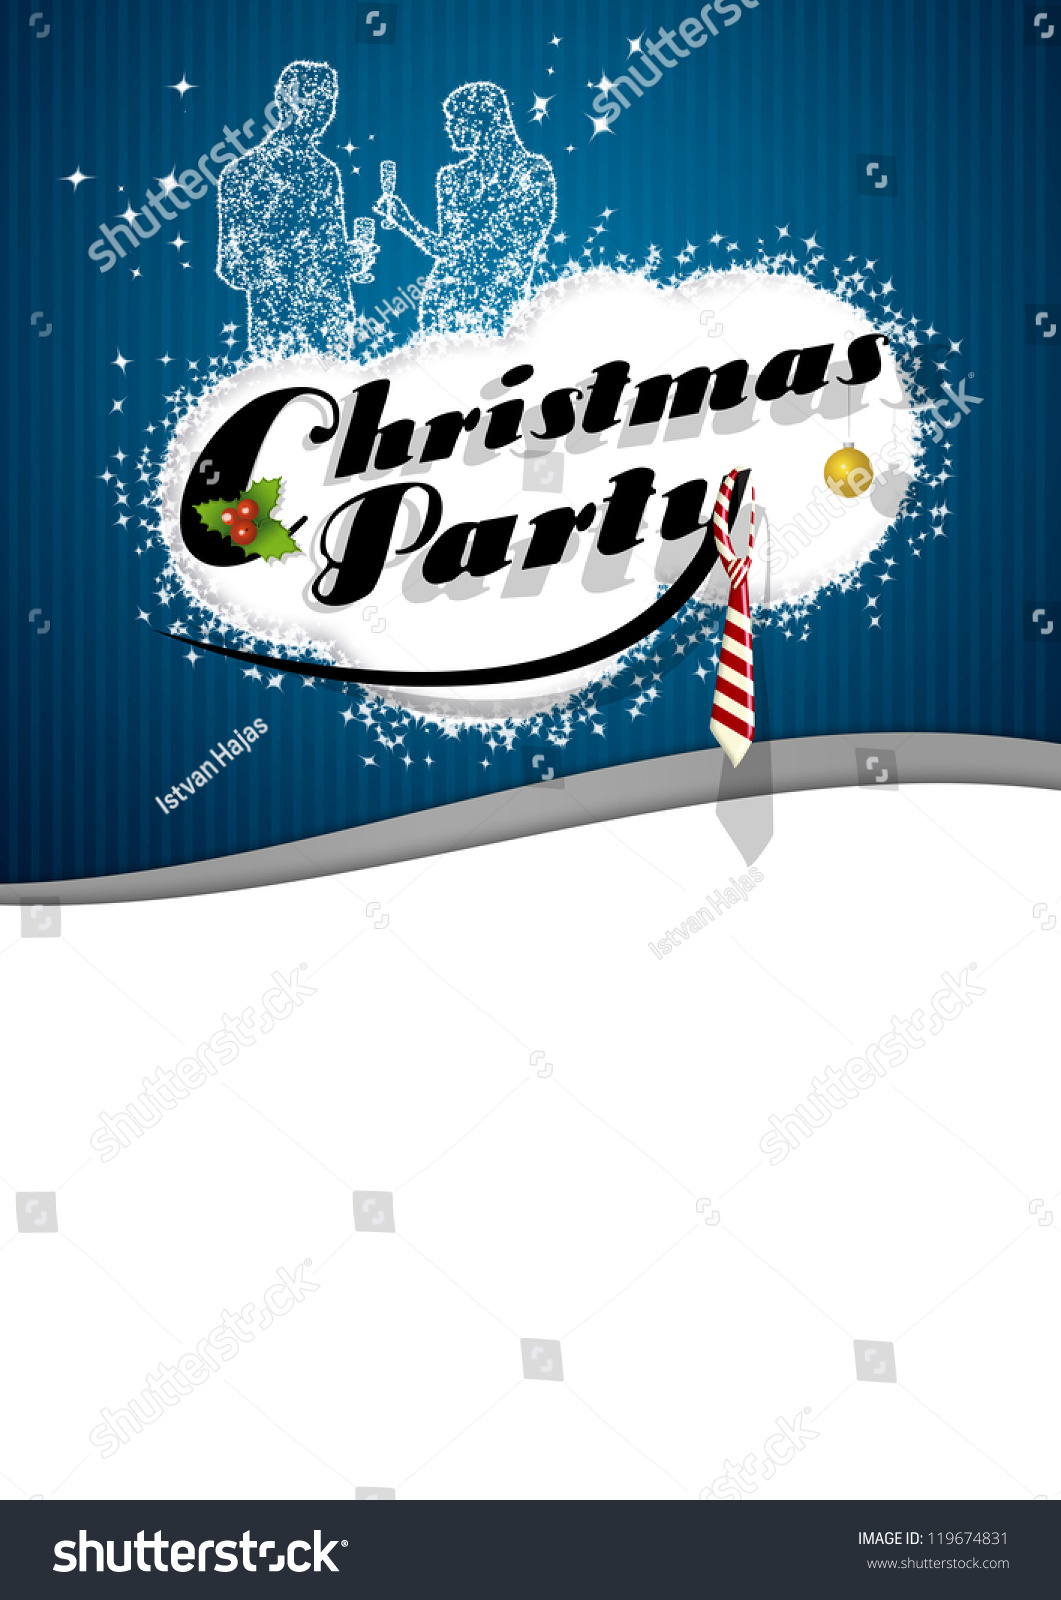 office christmas party poster background space stock illustration office christmas party poster background space